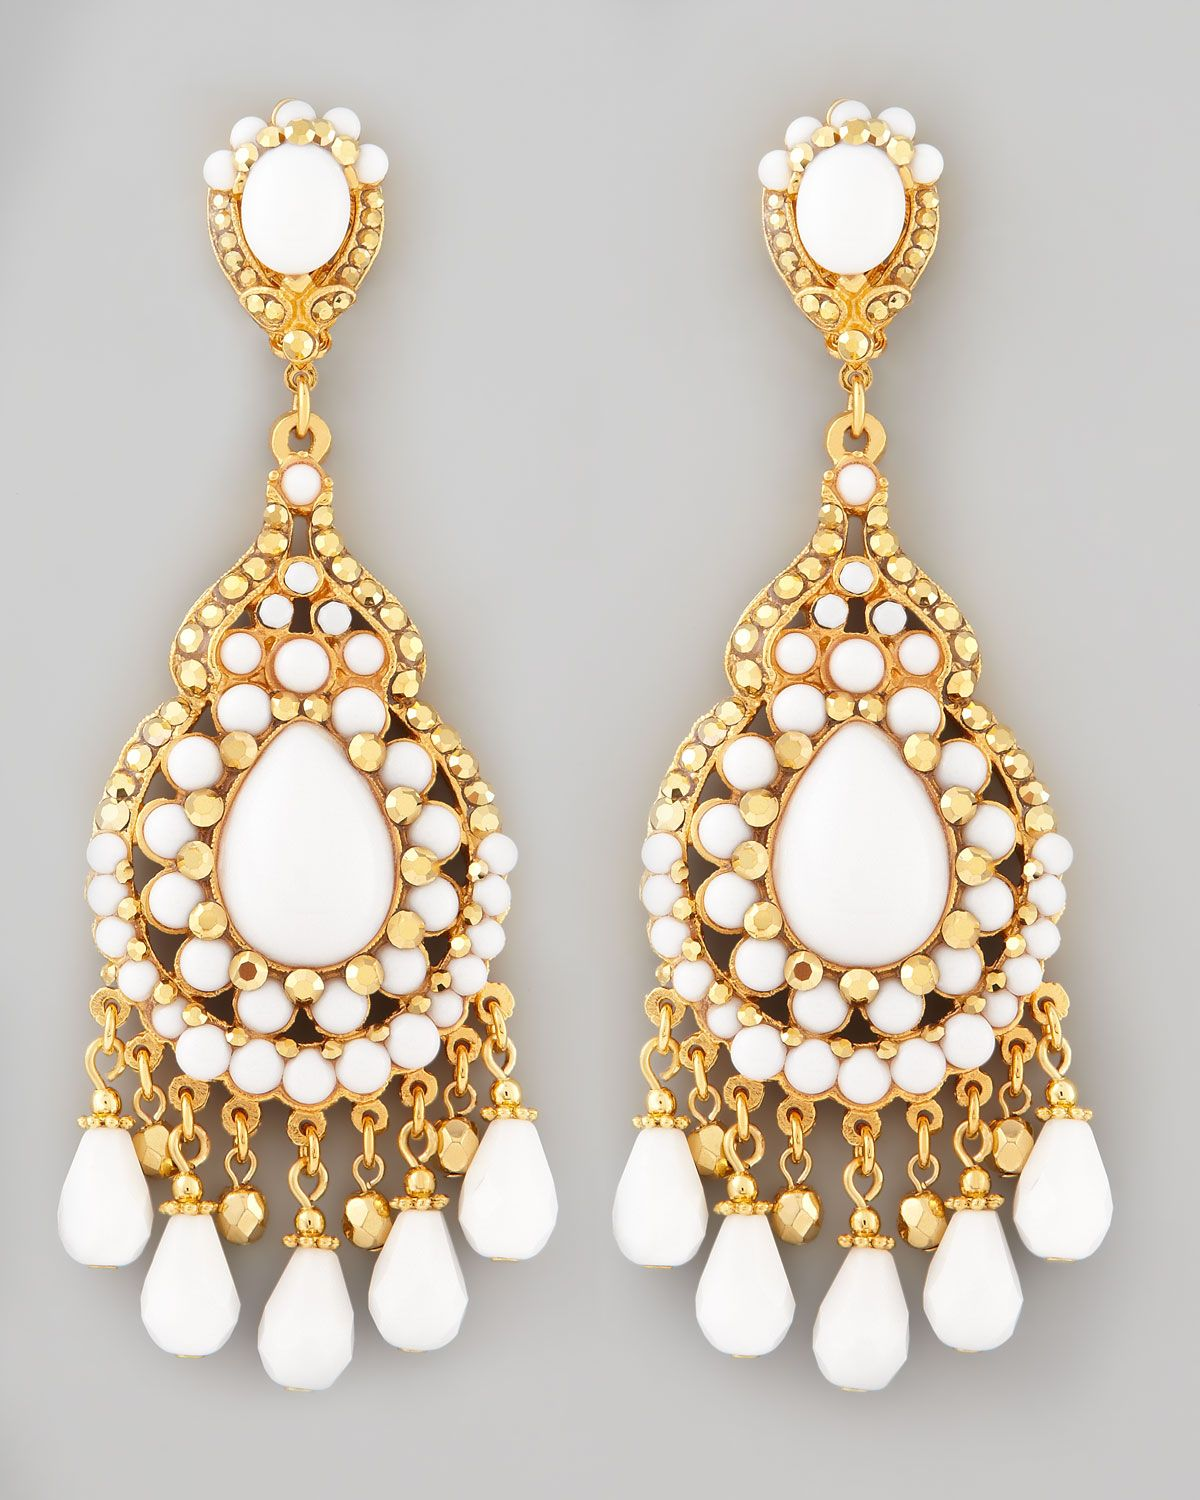 Httpharrislovejose maria barrera beaded chandelier clip httpharrislovejose maria barrera beaded chandelier clip earrings white p 4078ml aloadofball